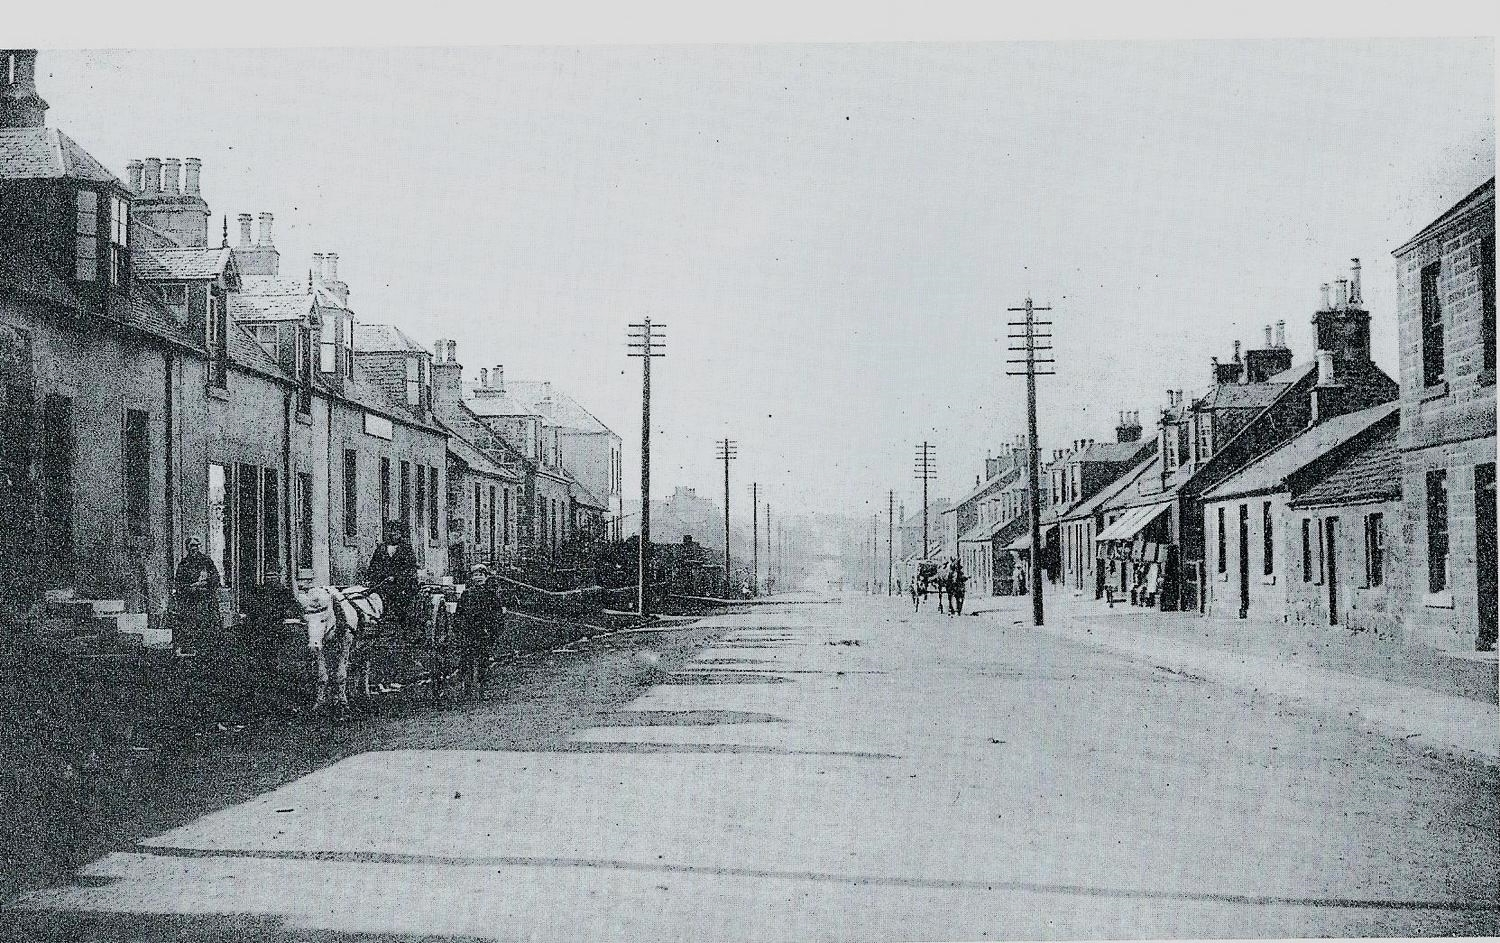 Main Street in Harthill, Lanark looking to the west. This street was for many years the main road between Edinburgh and Glasgow. Horse-drawn carts make up the traffic!